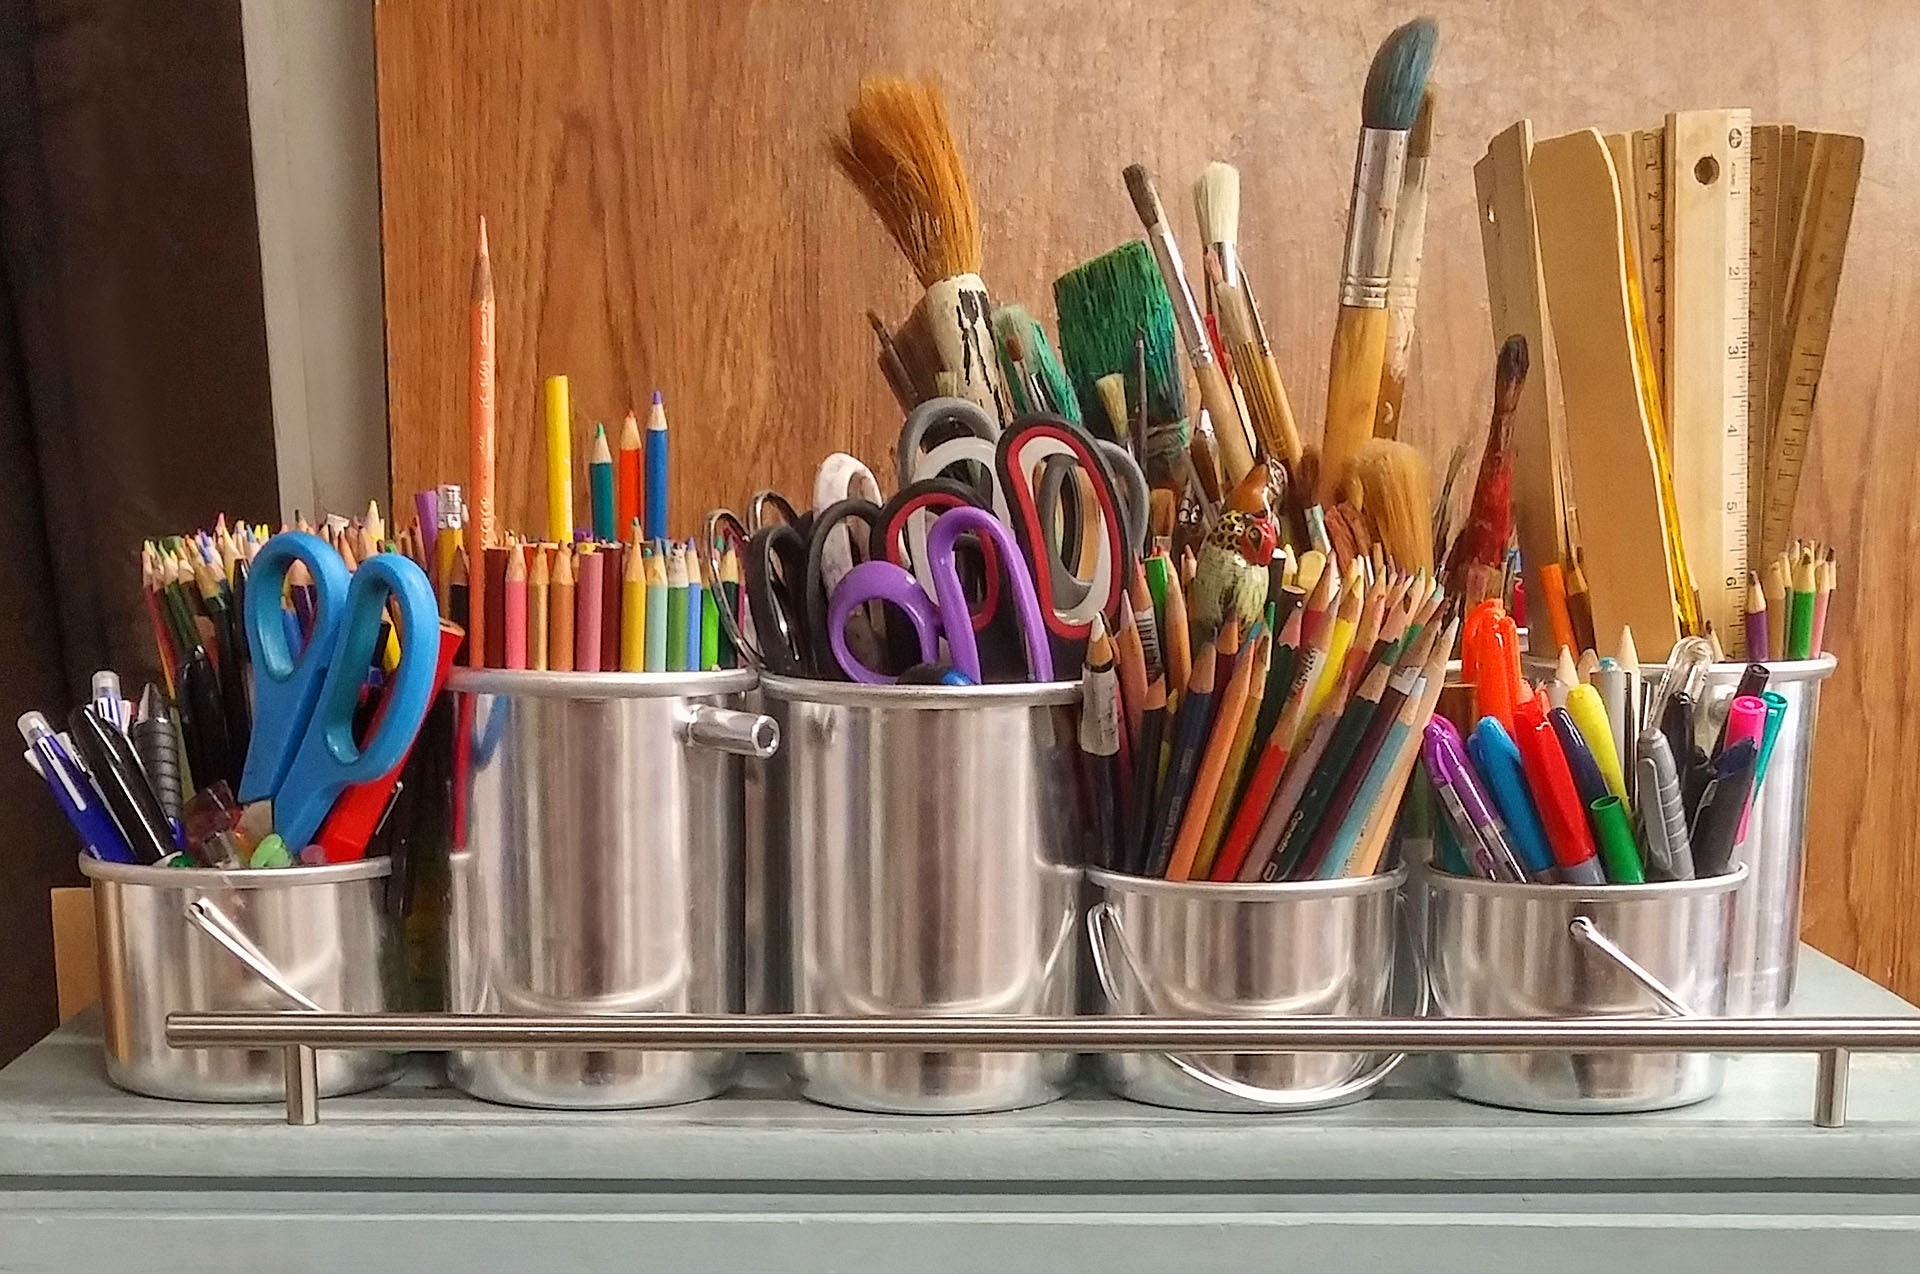 Silver buckets with pencils, markers, paint brushes, and other art supplies